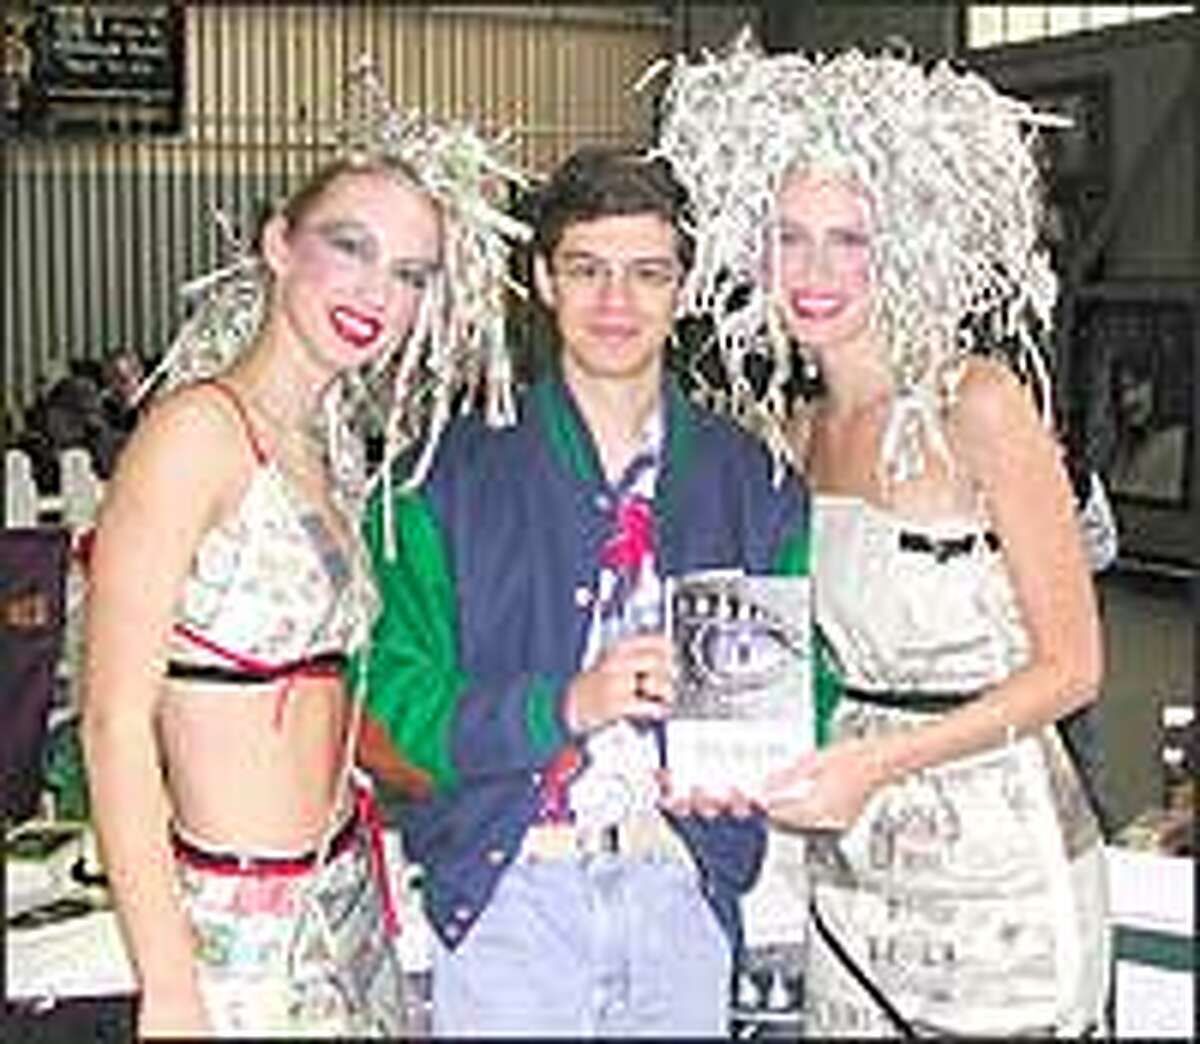 Christopher Paolini, shown with models Patricia O'Ryan, left, and Sabrina Carter promoting a hair salon during Northwest Bookfest, has signed a publishing deal reportedly worth more than $500,000.